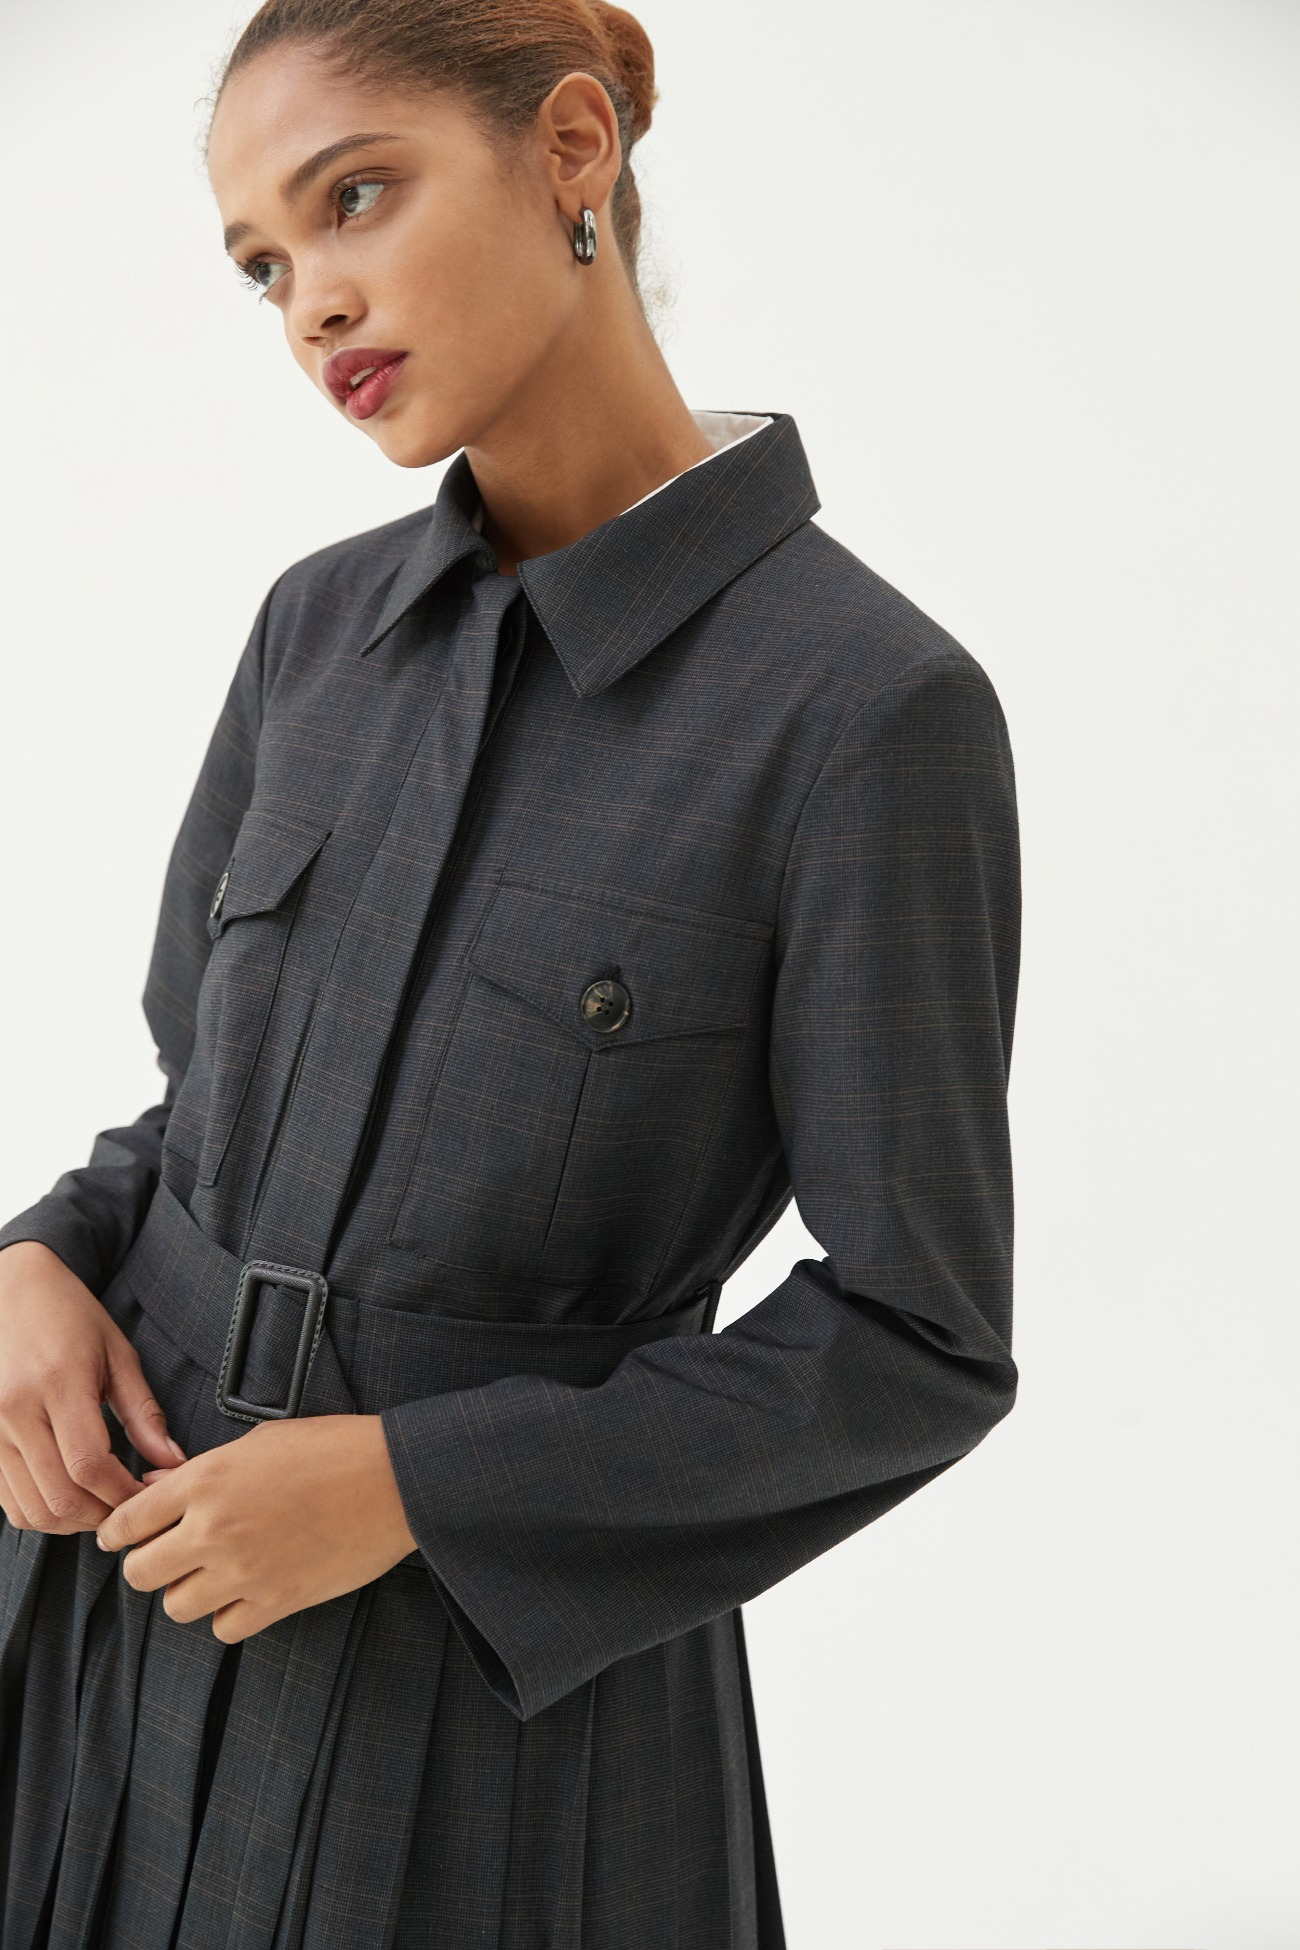 Jacket Dress Long Pleats (Charcoal)